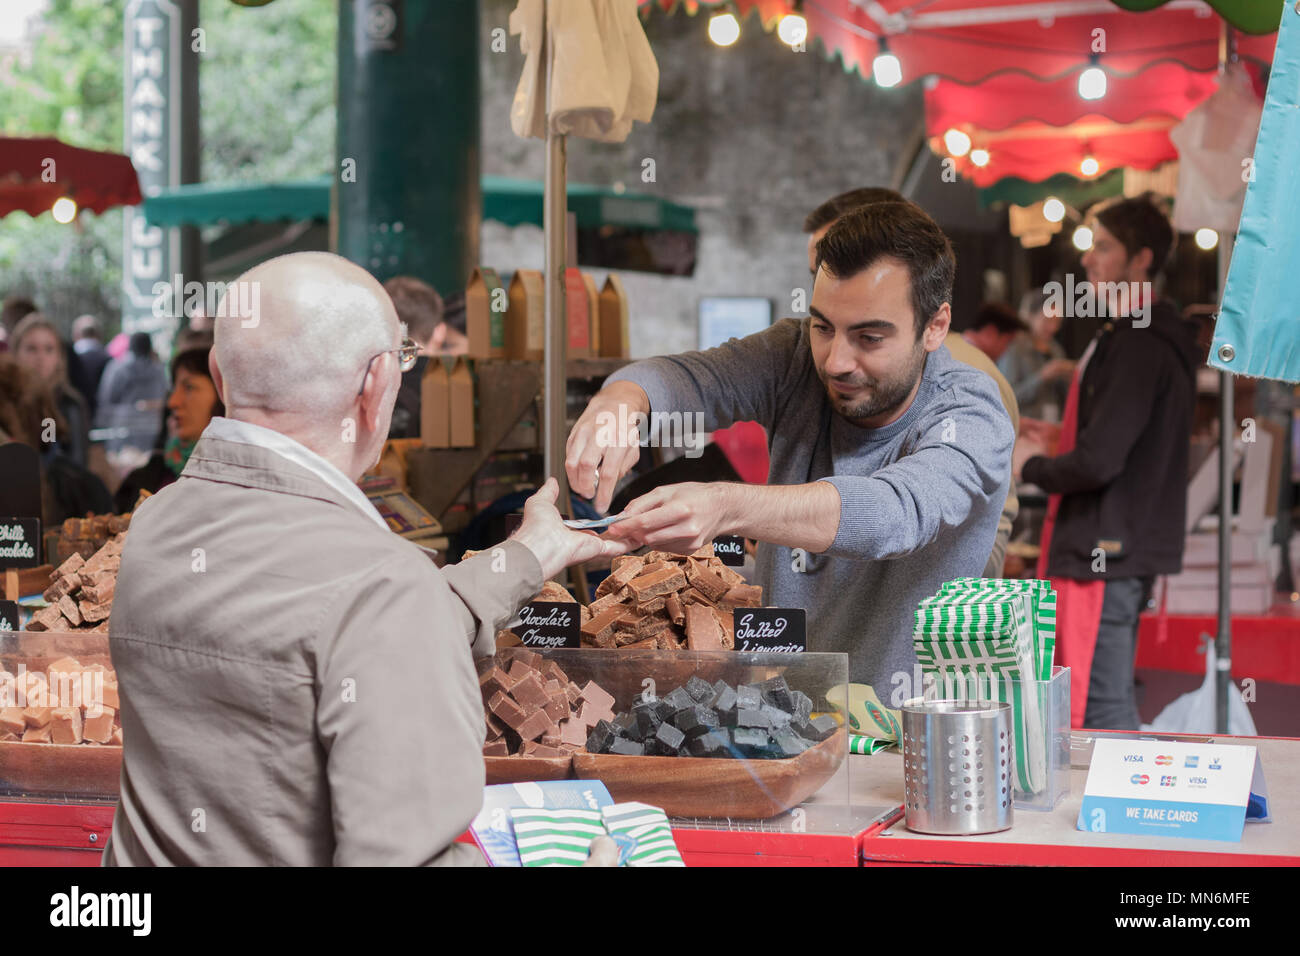 SOUTHWARK, LONDON-SEPTEMBER 7,2017: Man is selling chocolate pieces in stall at Borough Market on September 7, 2017 in London. Borough Market - Stock Image